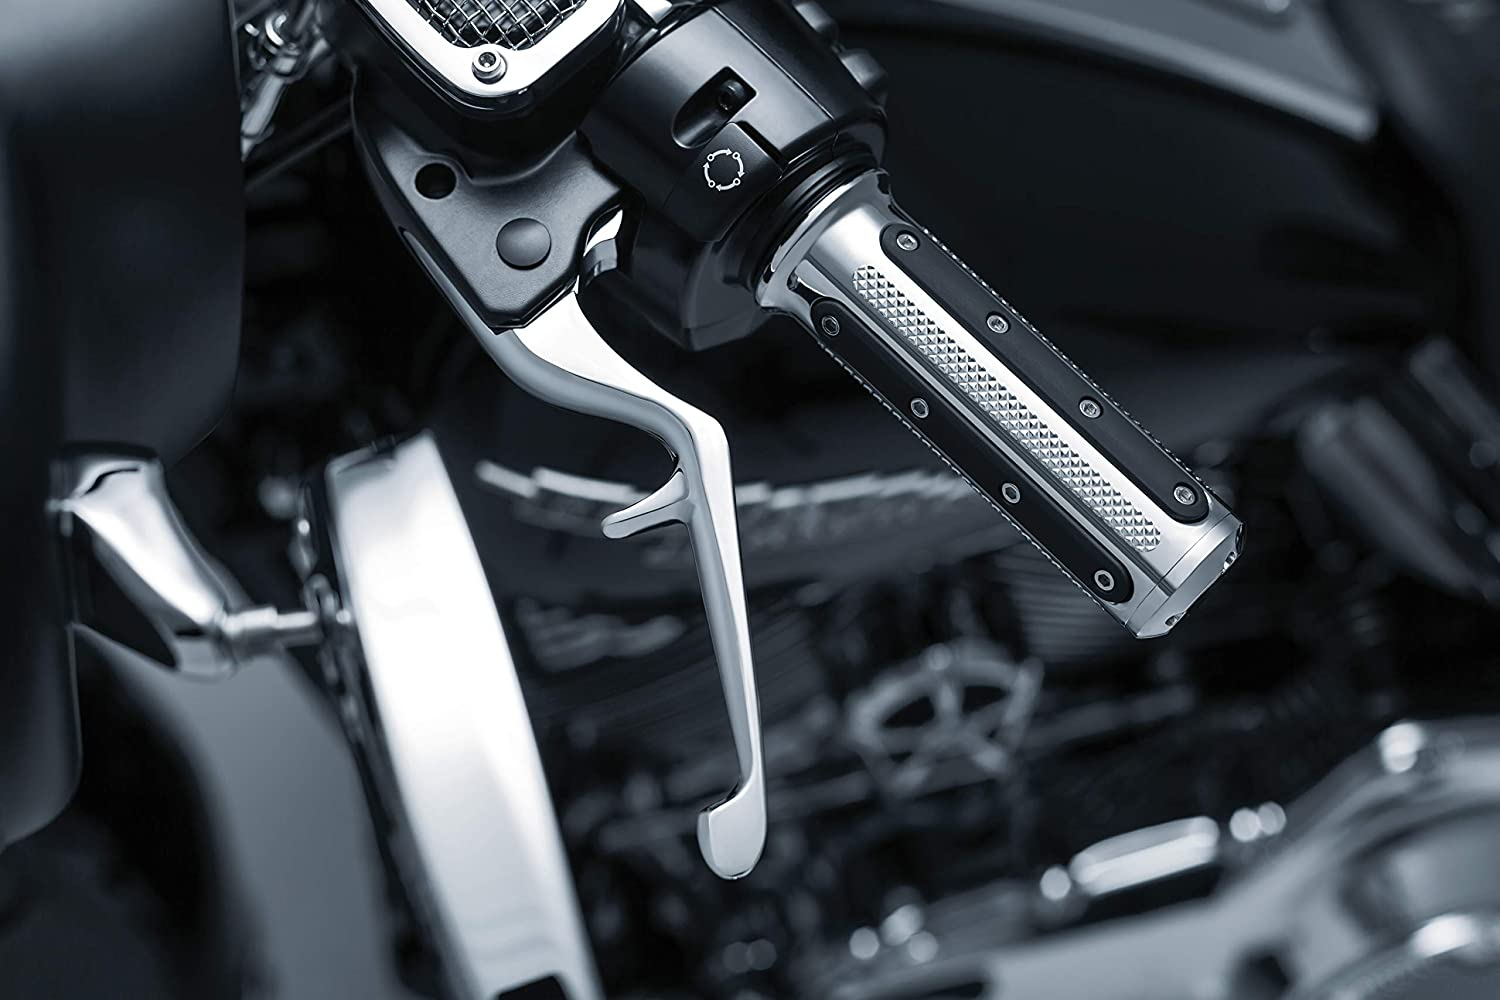 Chrome Clutch and Brake Trigger Levers for 1996-2017 Harley-Davidson Motorcycles with Cable Clutch 1 Pair Kuryakyn 1029 Motorcycle Handlebar Accessory